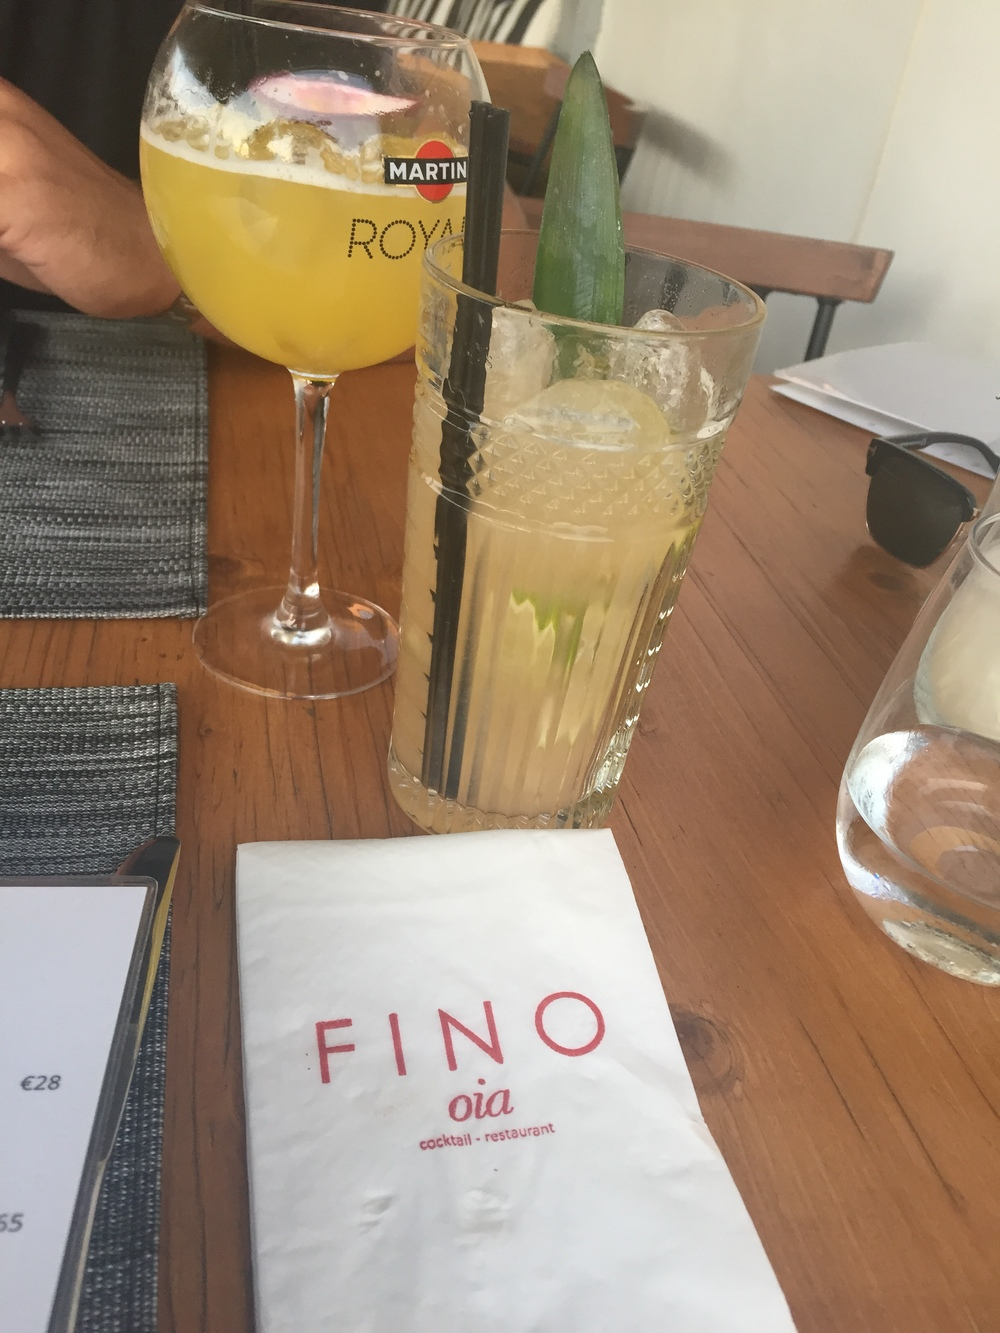 With most restaurants relying on the sunset to float their business (over differentiating their menus), we found this absolute gem hidden behind the church. Fino has an Aussie-esque quality in its fresh, modern, innovative, tasty take on their standard variety of food. And the cocktails are not the standard either. Order the Fino (Pineapple) or what we called 'the Ginger one please'. They'll know, it comes highly recommended.